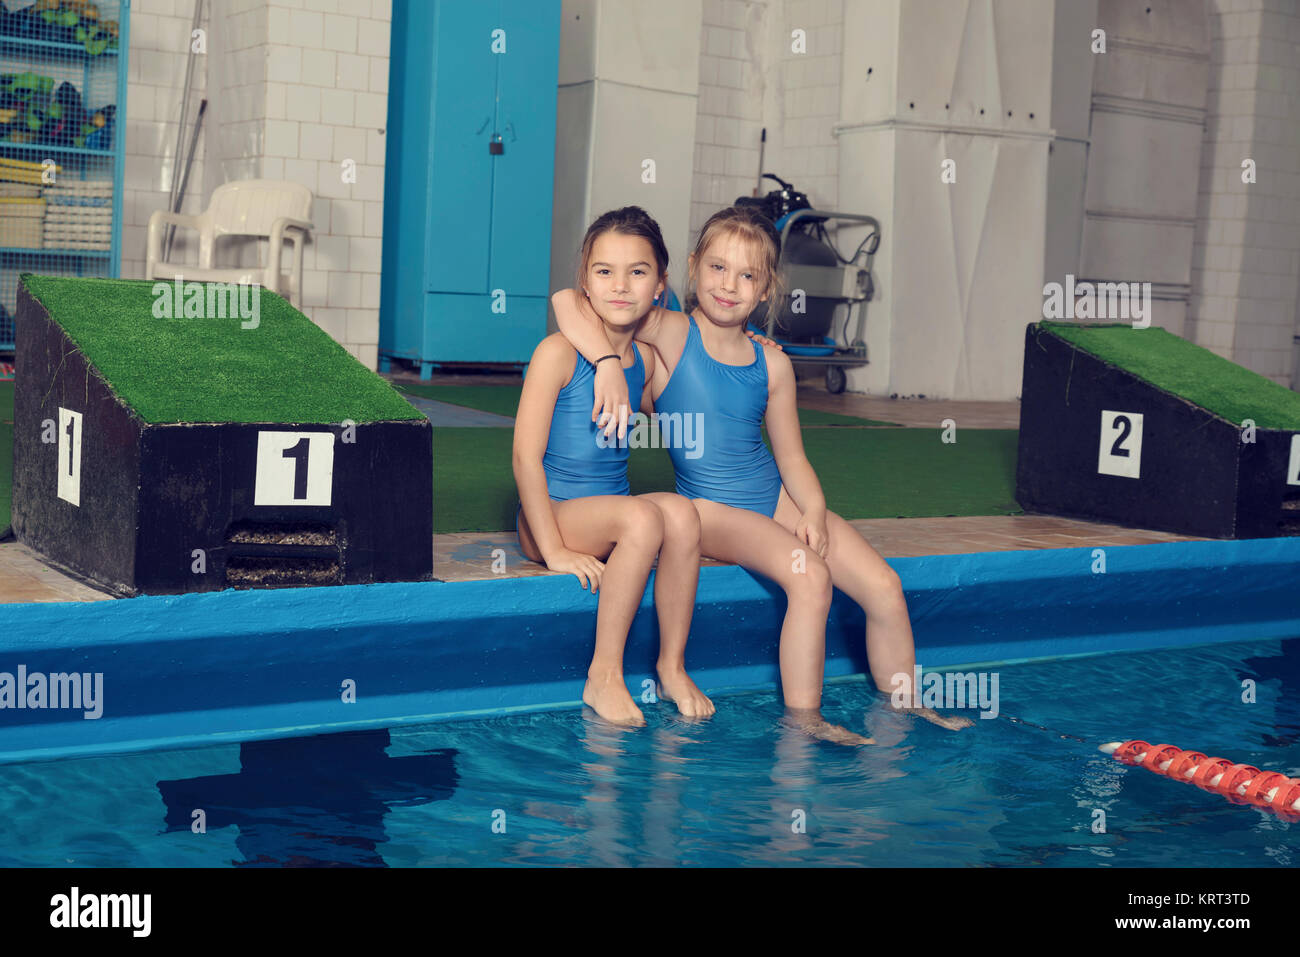 Swimming pool jailbai tteens — 14